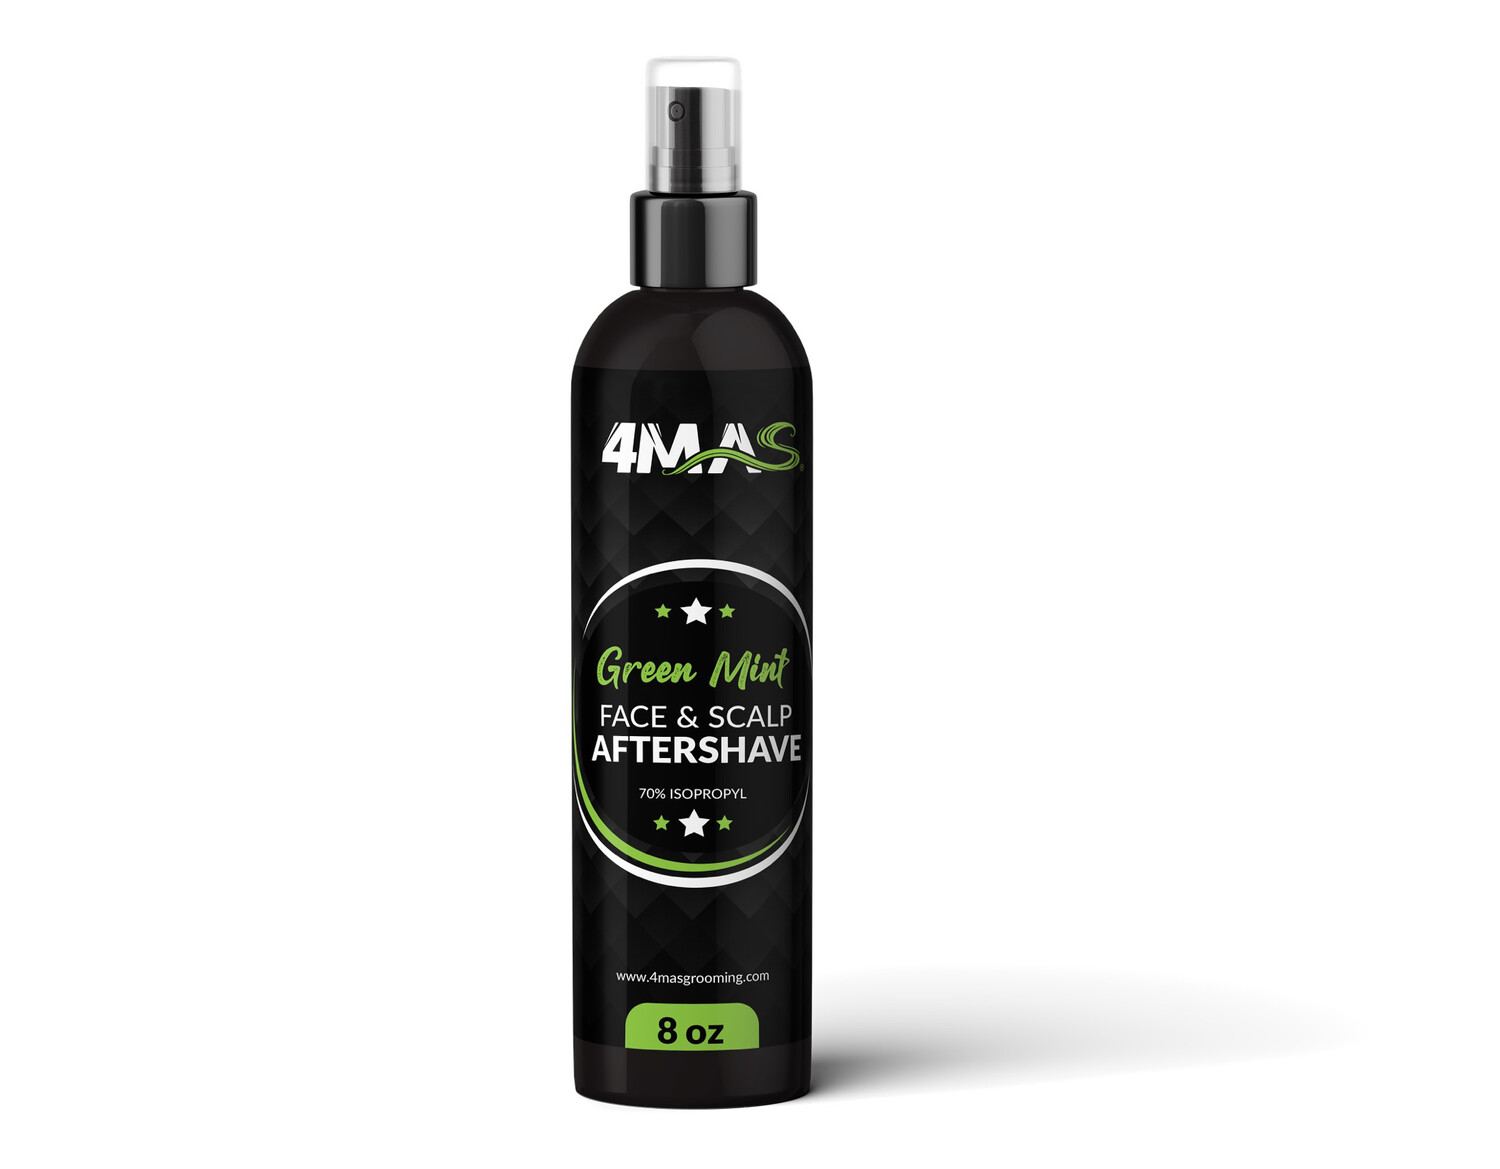 Green Mint Head And Face Aftershave